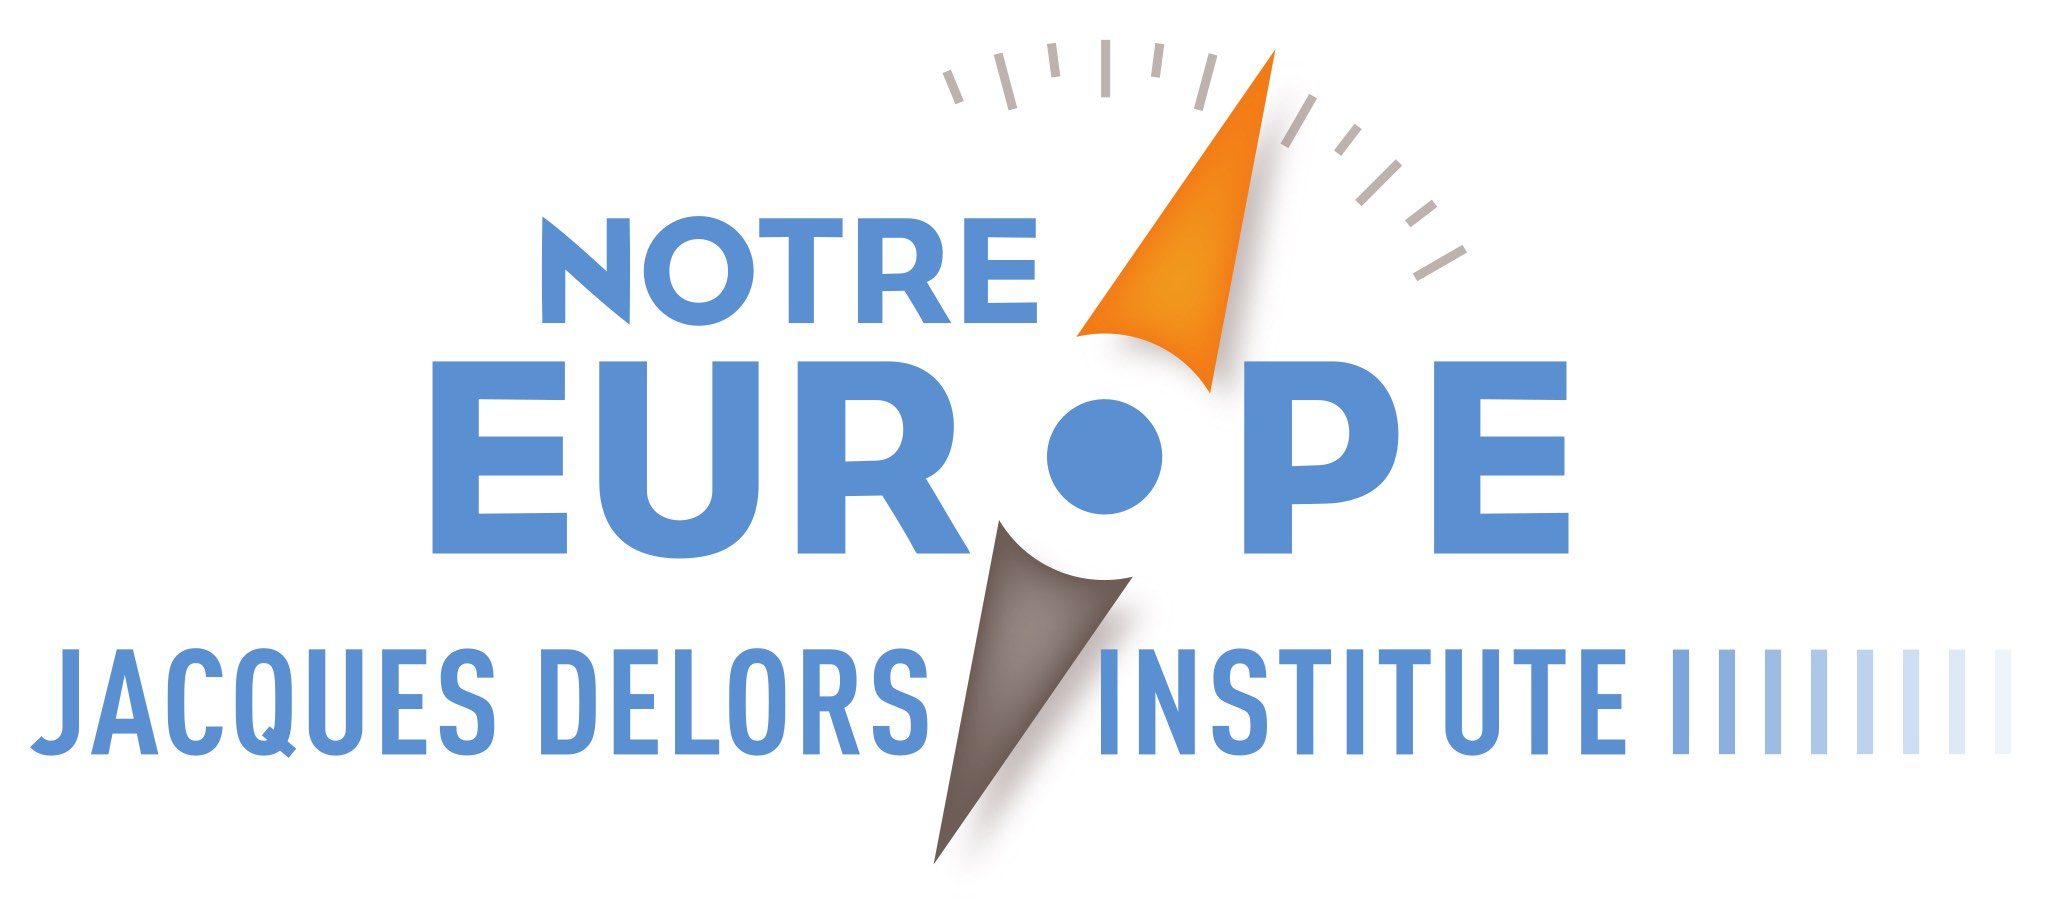 Jacques Delors Institute